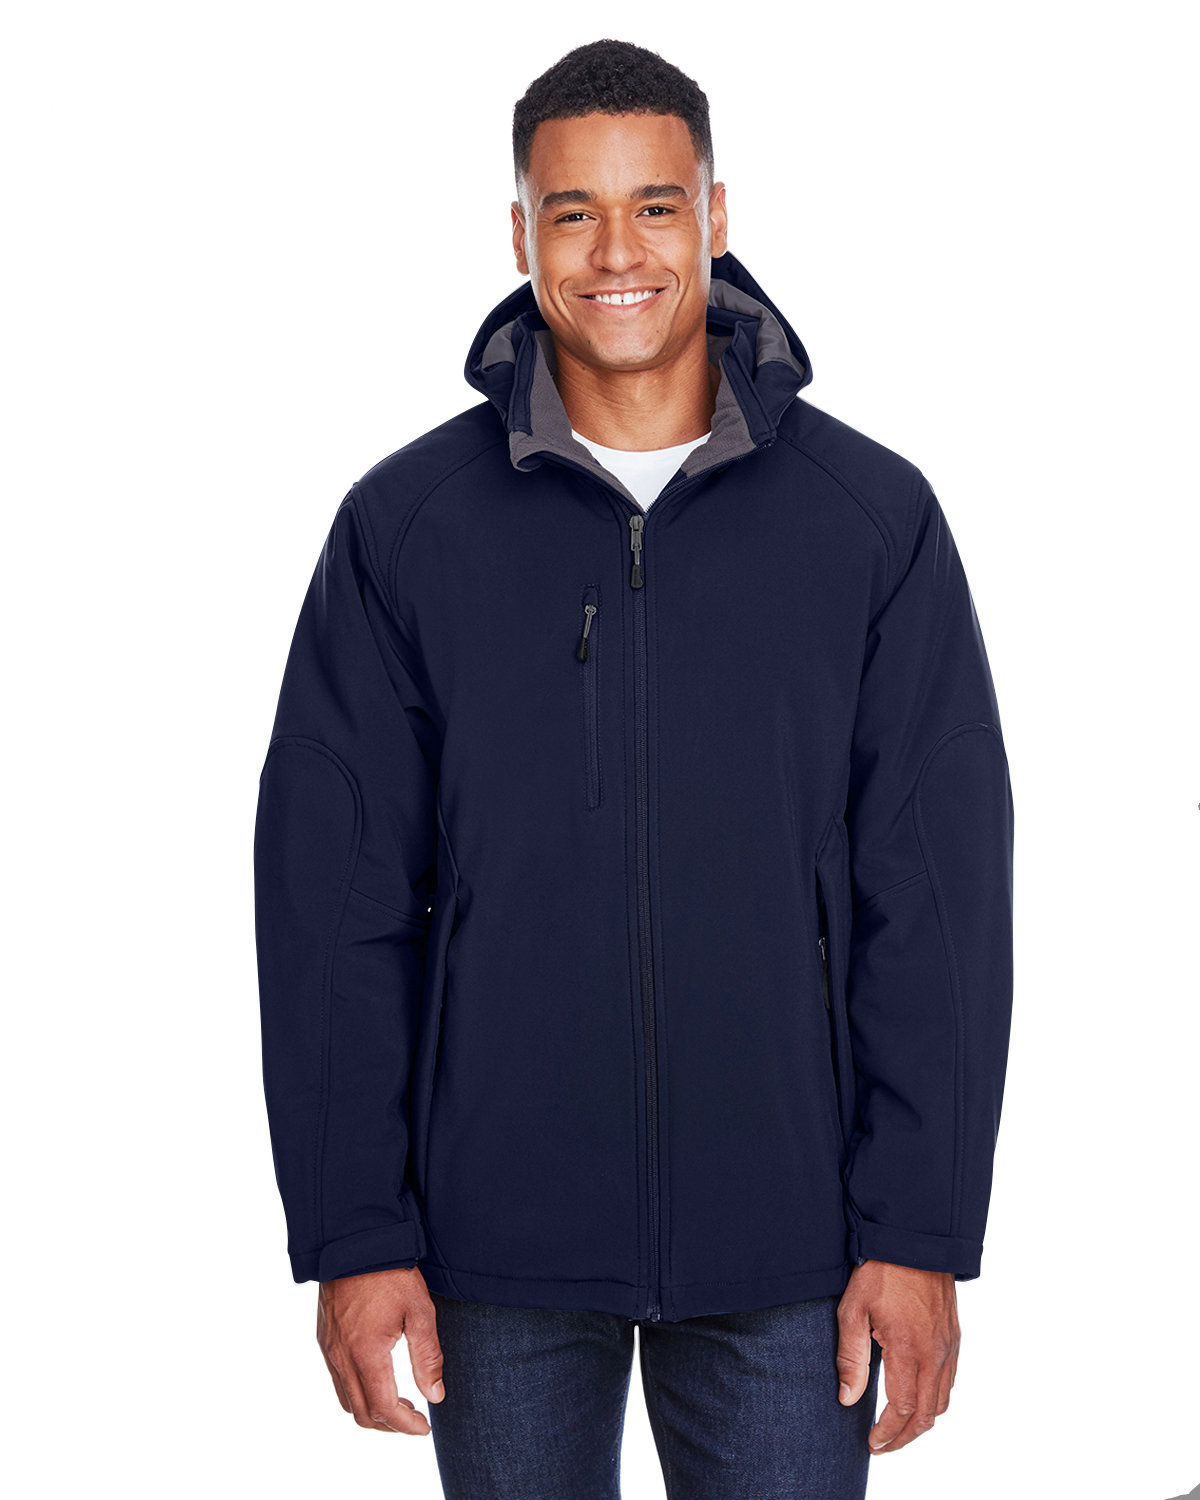 North End Men's Glacier Insulated Three-Layer Fleece Bonded Soft Shell Jacket with Detachable Hood CLASSIC NAVY